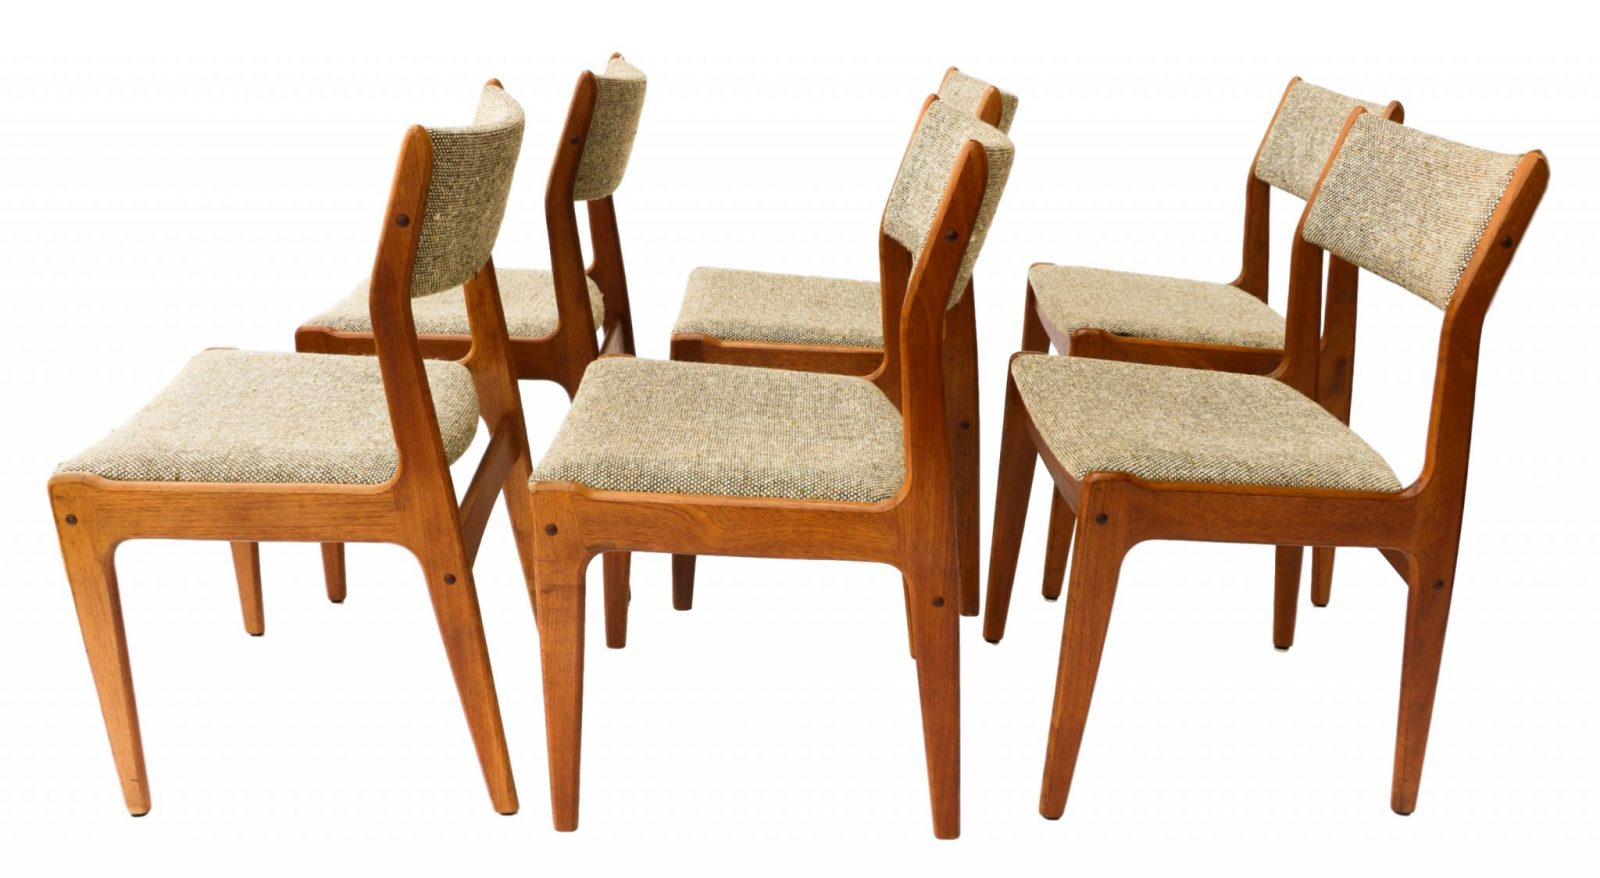 Danish Teak Dining Chairs Gorgeous Teak Scandinavia Danish Modern Dining Chairs Six